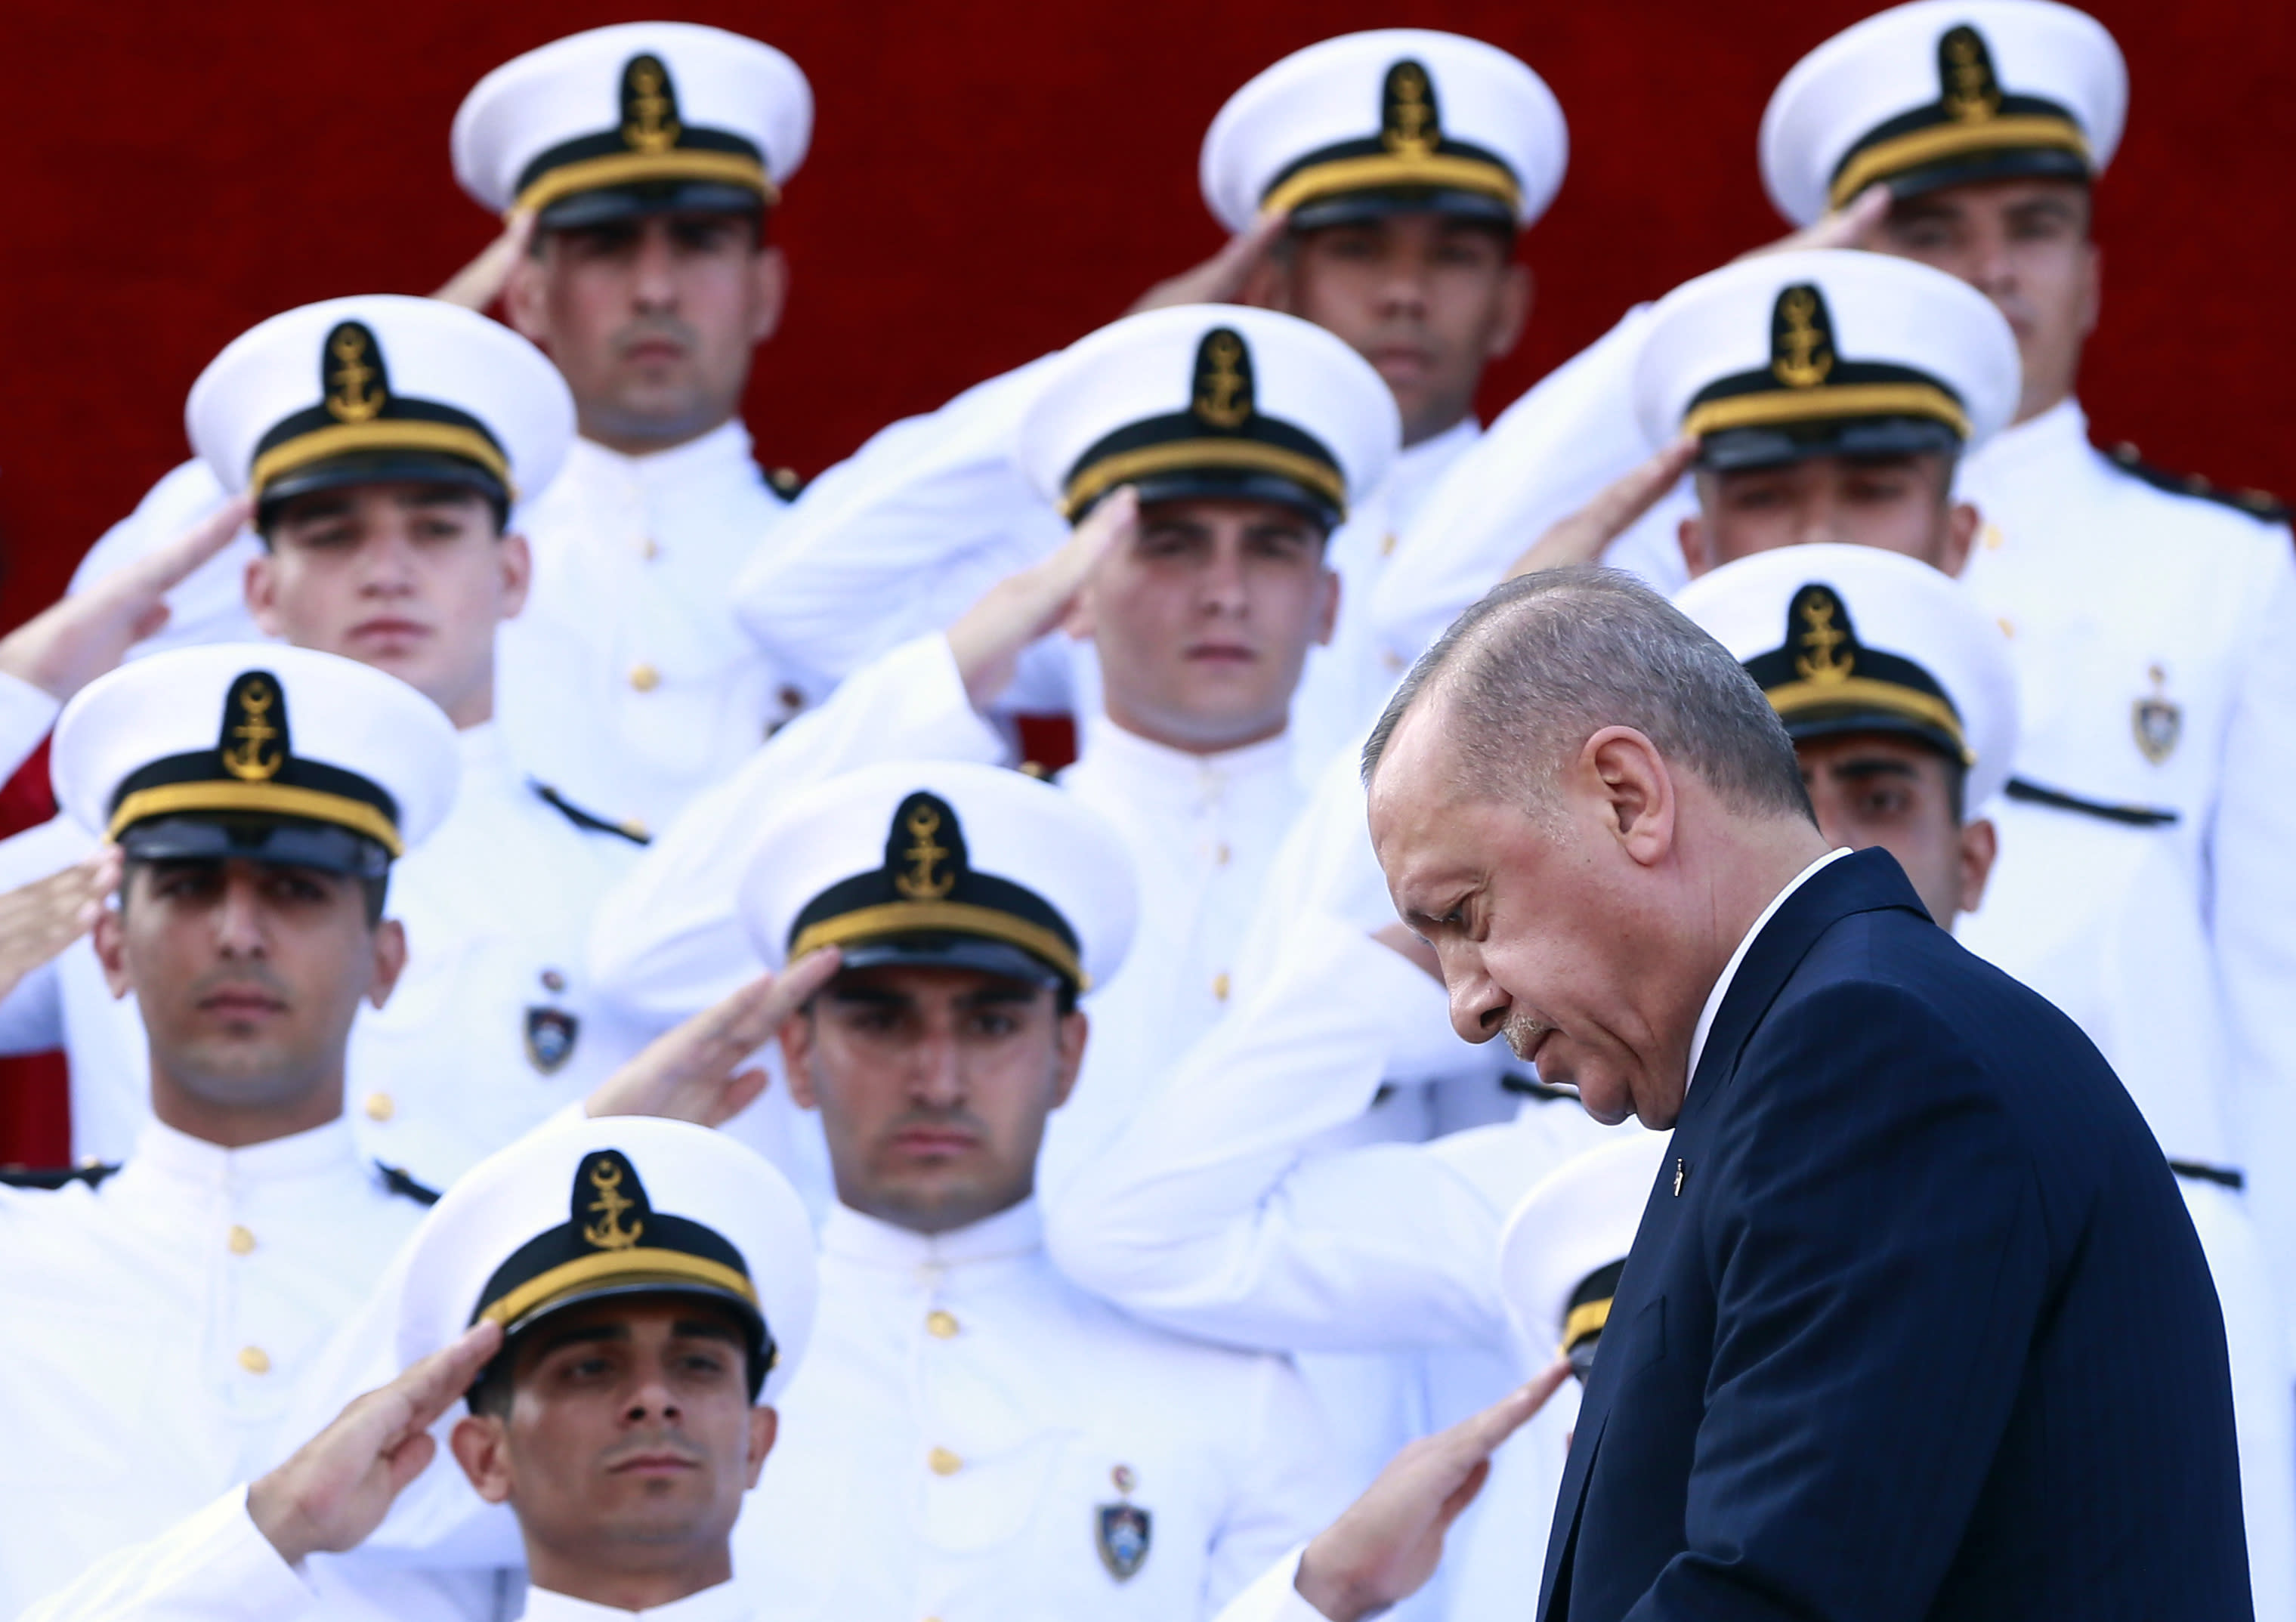 Turkey's President Recep Tayyip Erdogan, arrives to deliver a speech to graduates of a military academy in Istanbul, Saturday, Aug. 31, 2019. Erdogan said the U.S. had up to three weeks to satisfy Turkish demands and has threatened to launch a unilateral offensive into northeastern Syria if plans to establish a so-called safe zone along Turkey's border fail to meet his expectations. Earlier this month, Turkish and U.S. officials agreed to set up the zone east of the Euphrates River. (Presidential Press Service via AP, Pool)